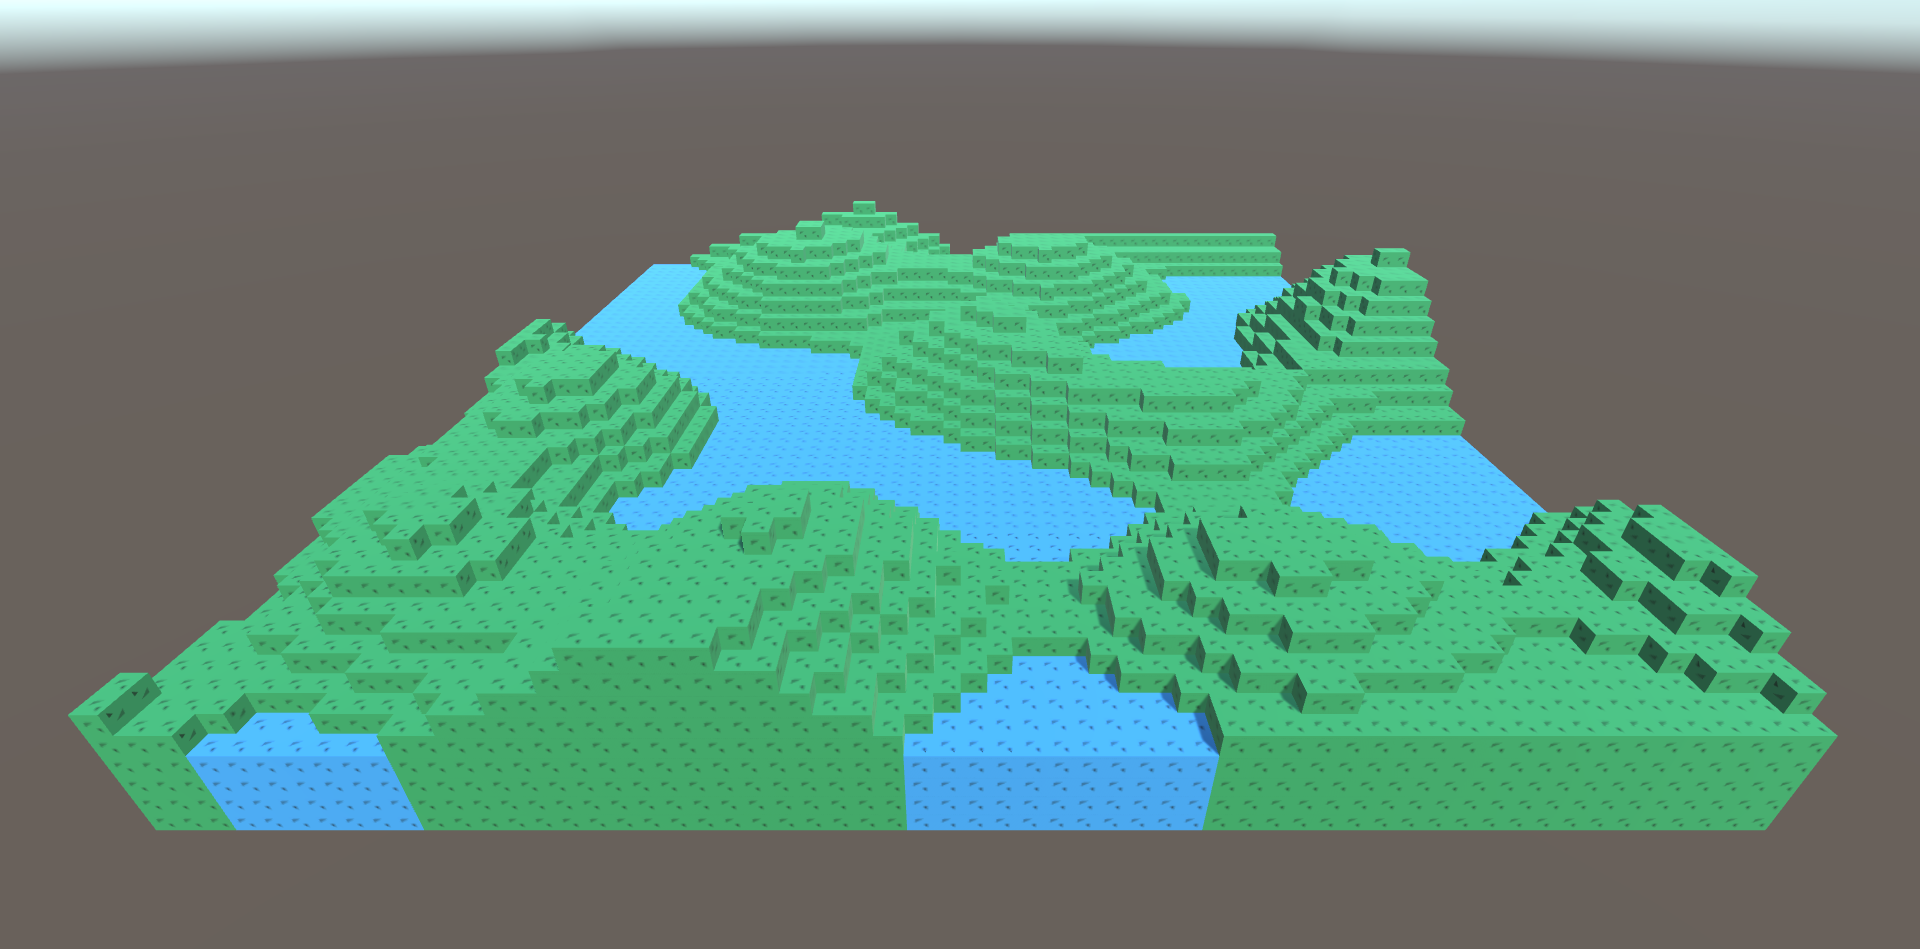 Learning more about procedural generation so I started making a